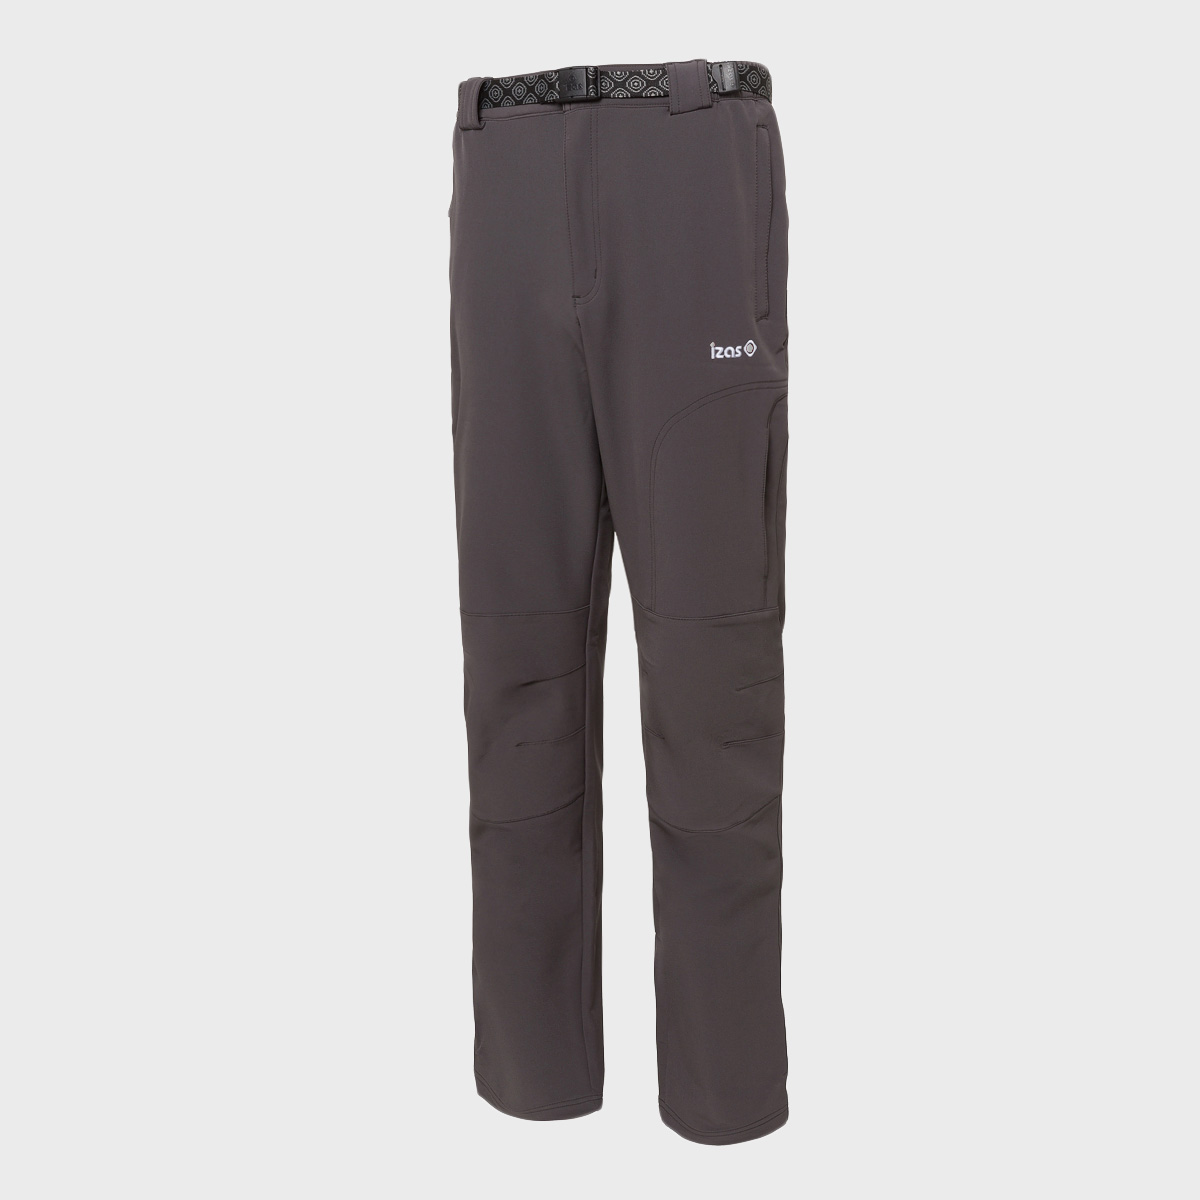 MAN'S CHAMONIX STRETCH PANT GREY